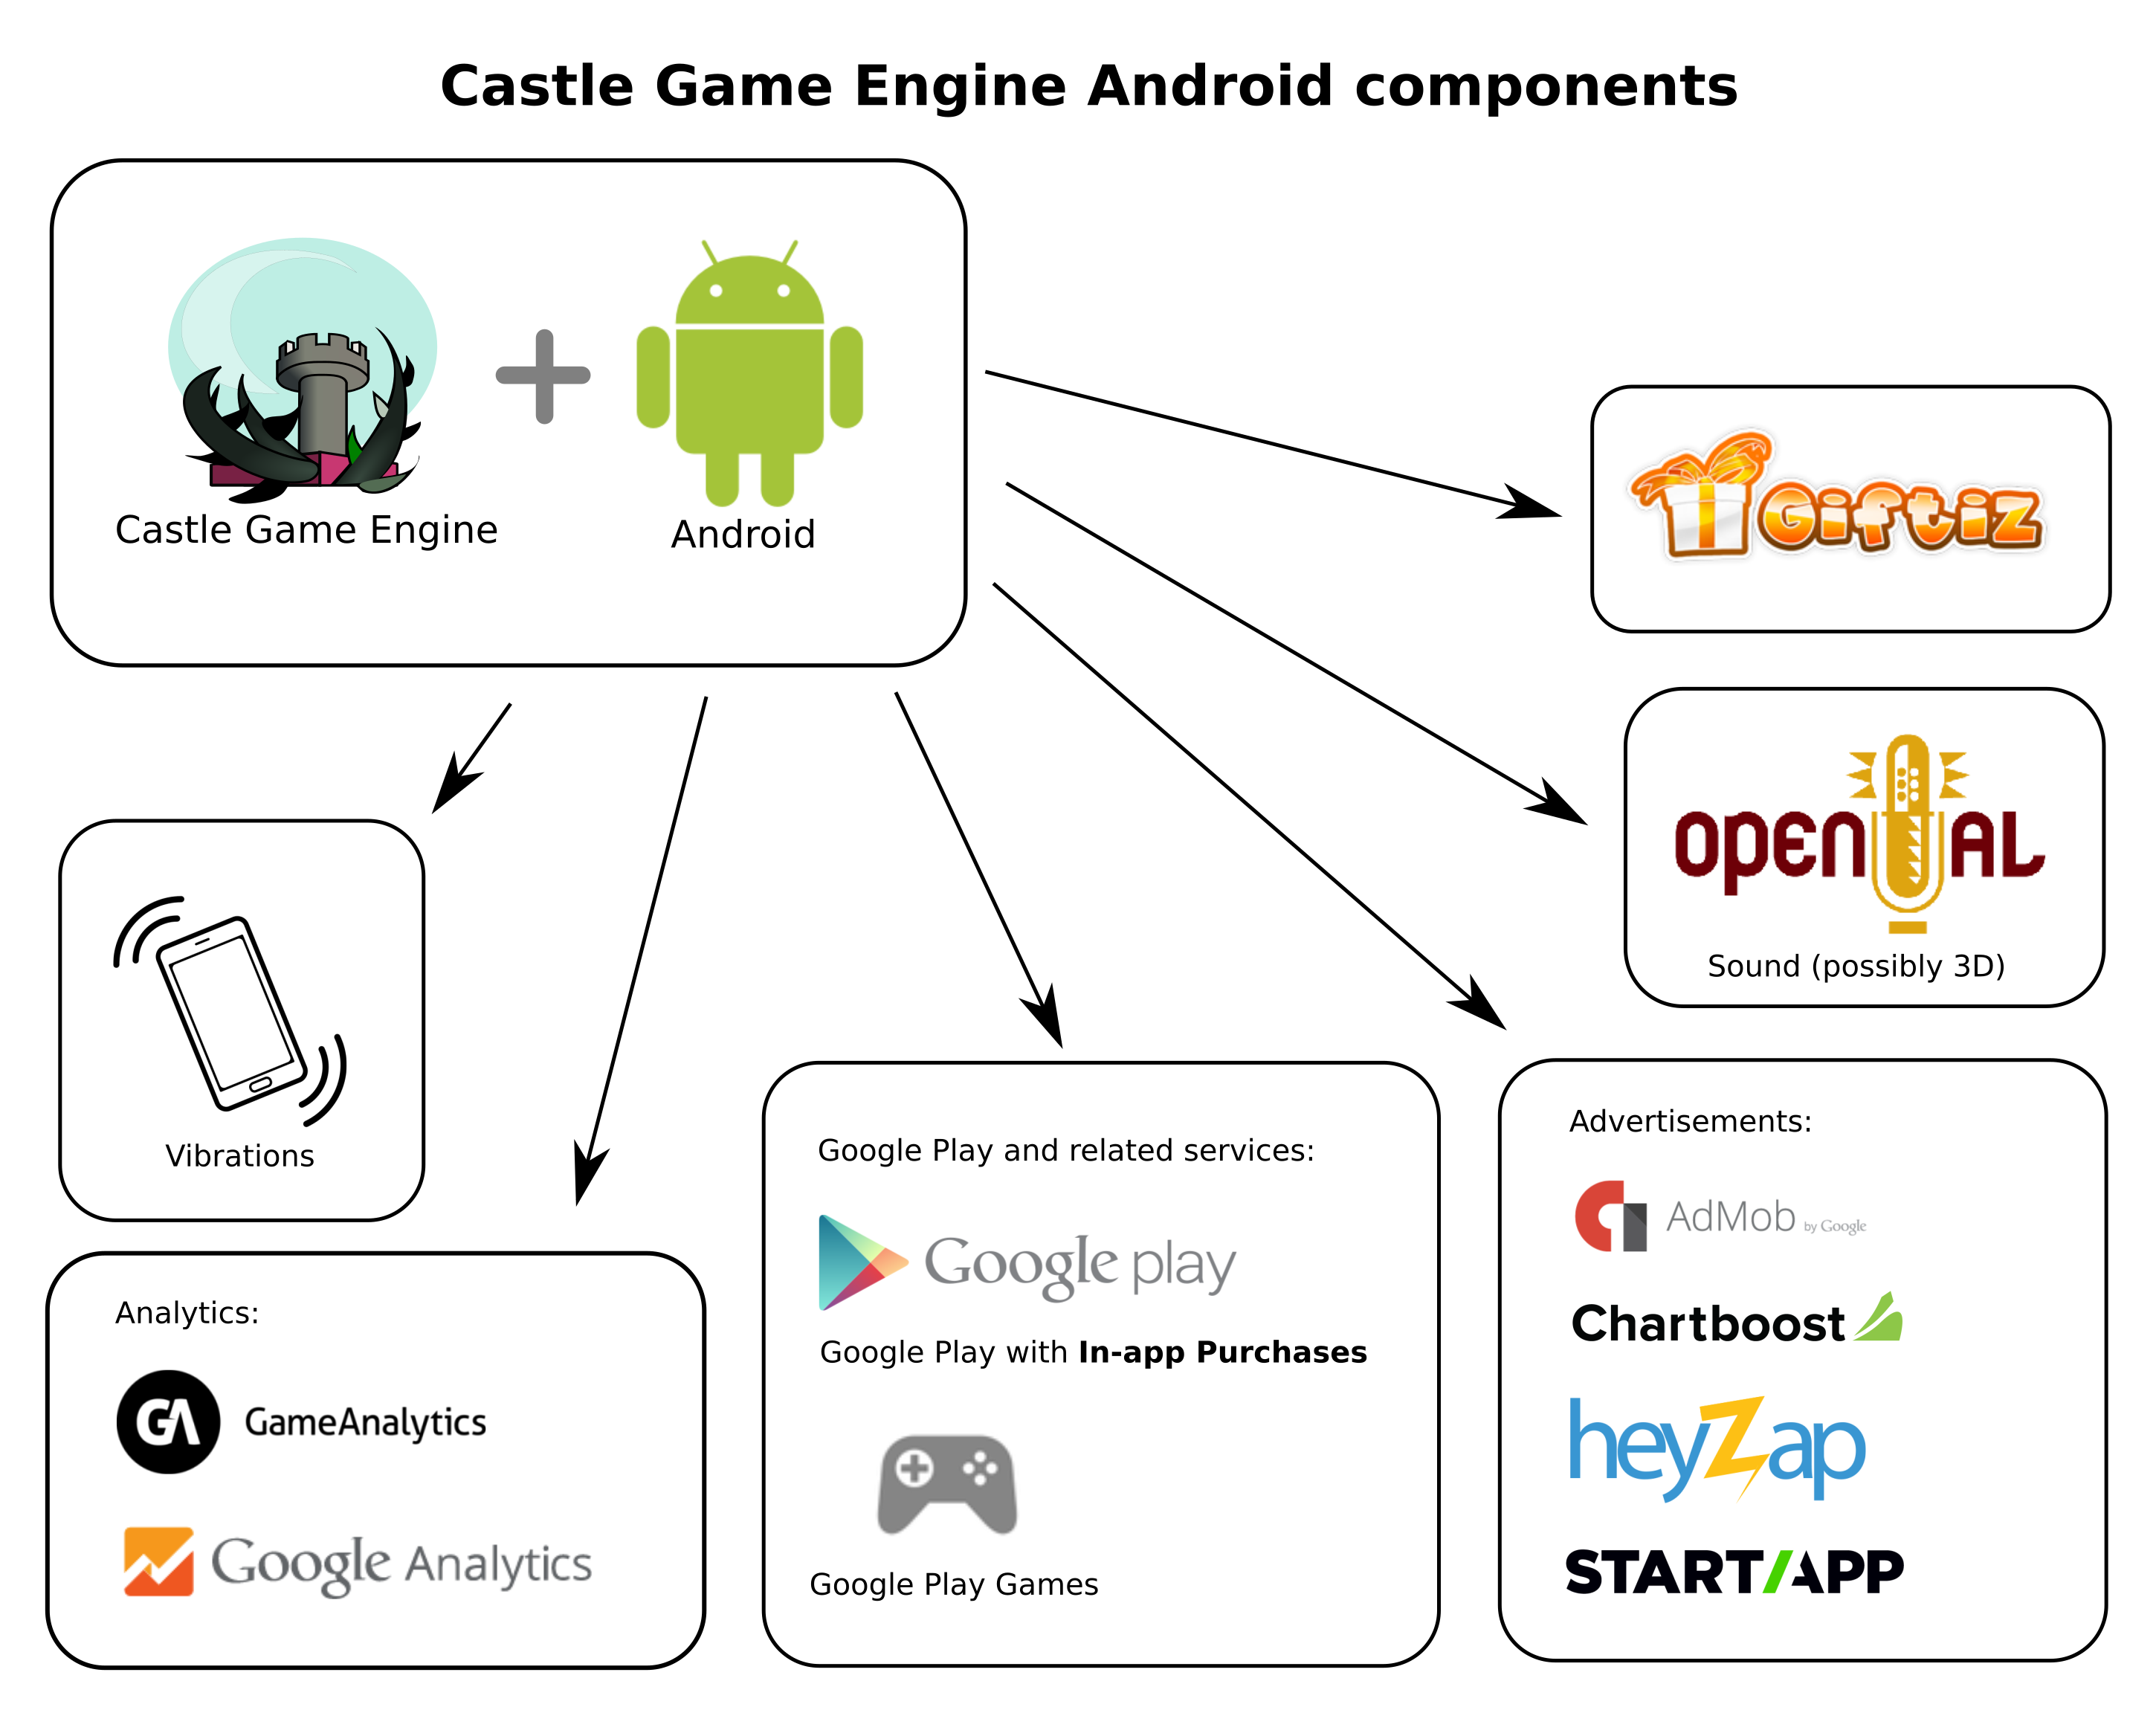 integrations on android available in castle game engine - in-app  purchases, ads,